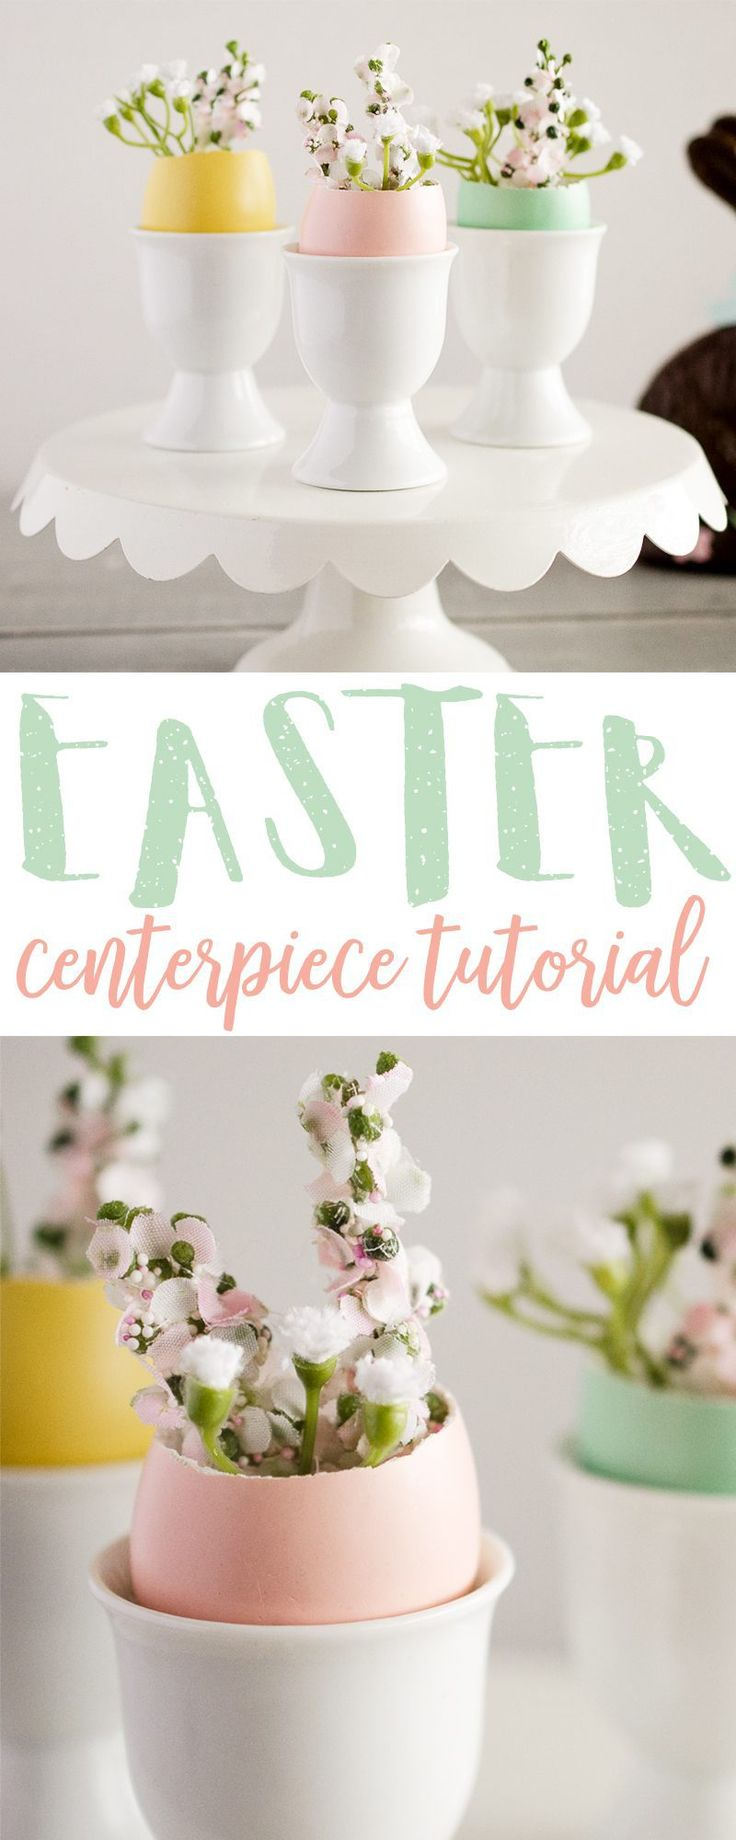 Spring butterfly pasta decor 25 easter and spring decorations - Find This Pin And More On Diy Spring Easter